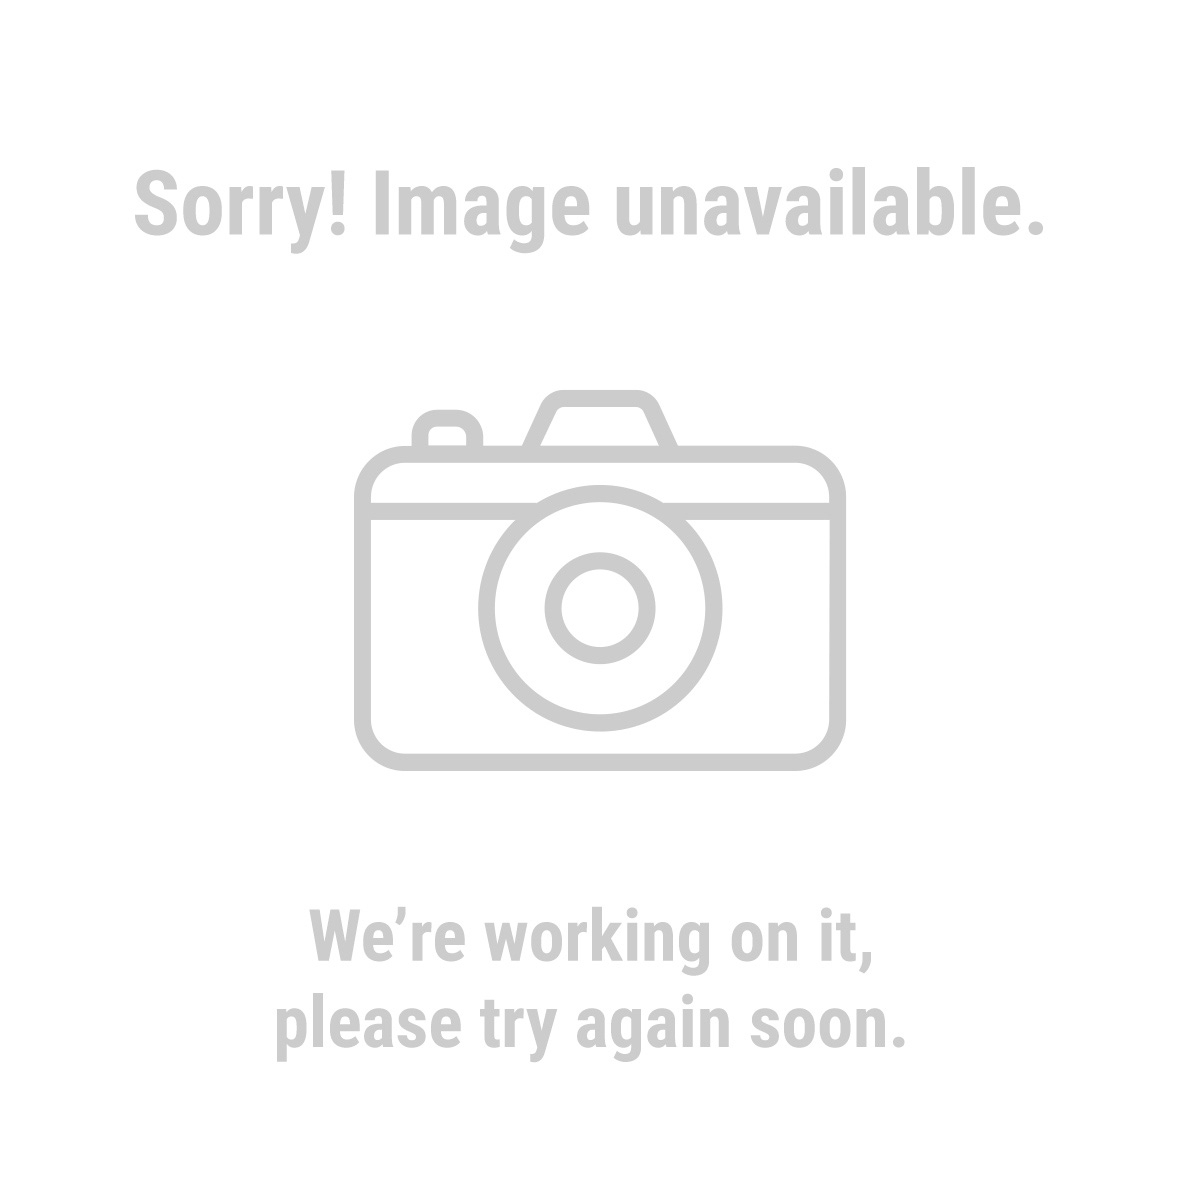 Western Safety 93641 Mechanic's Gloves, X-Large